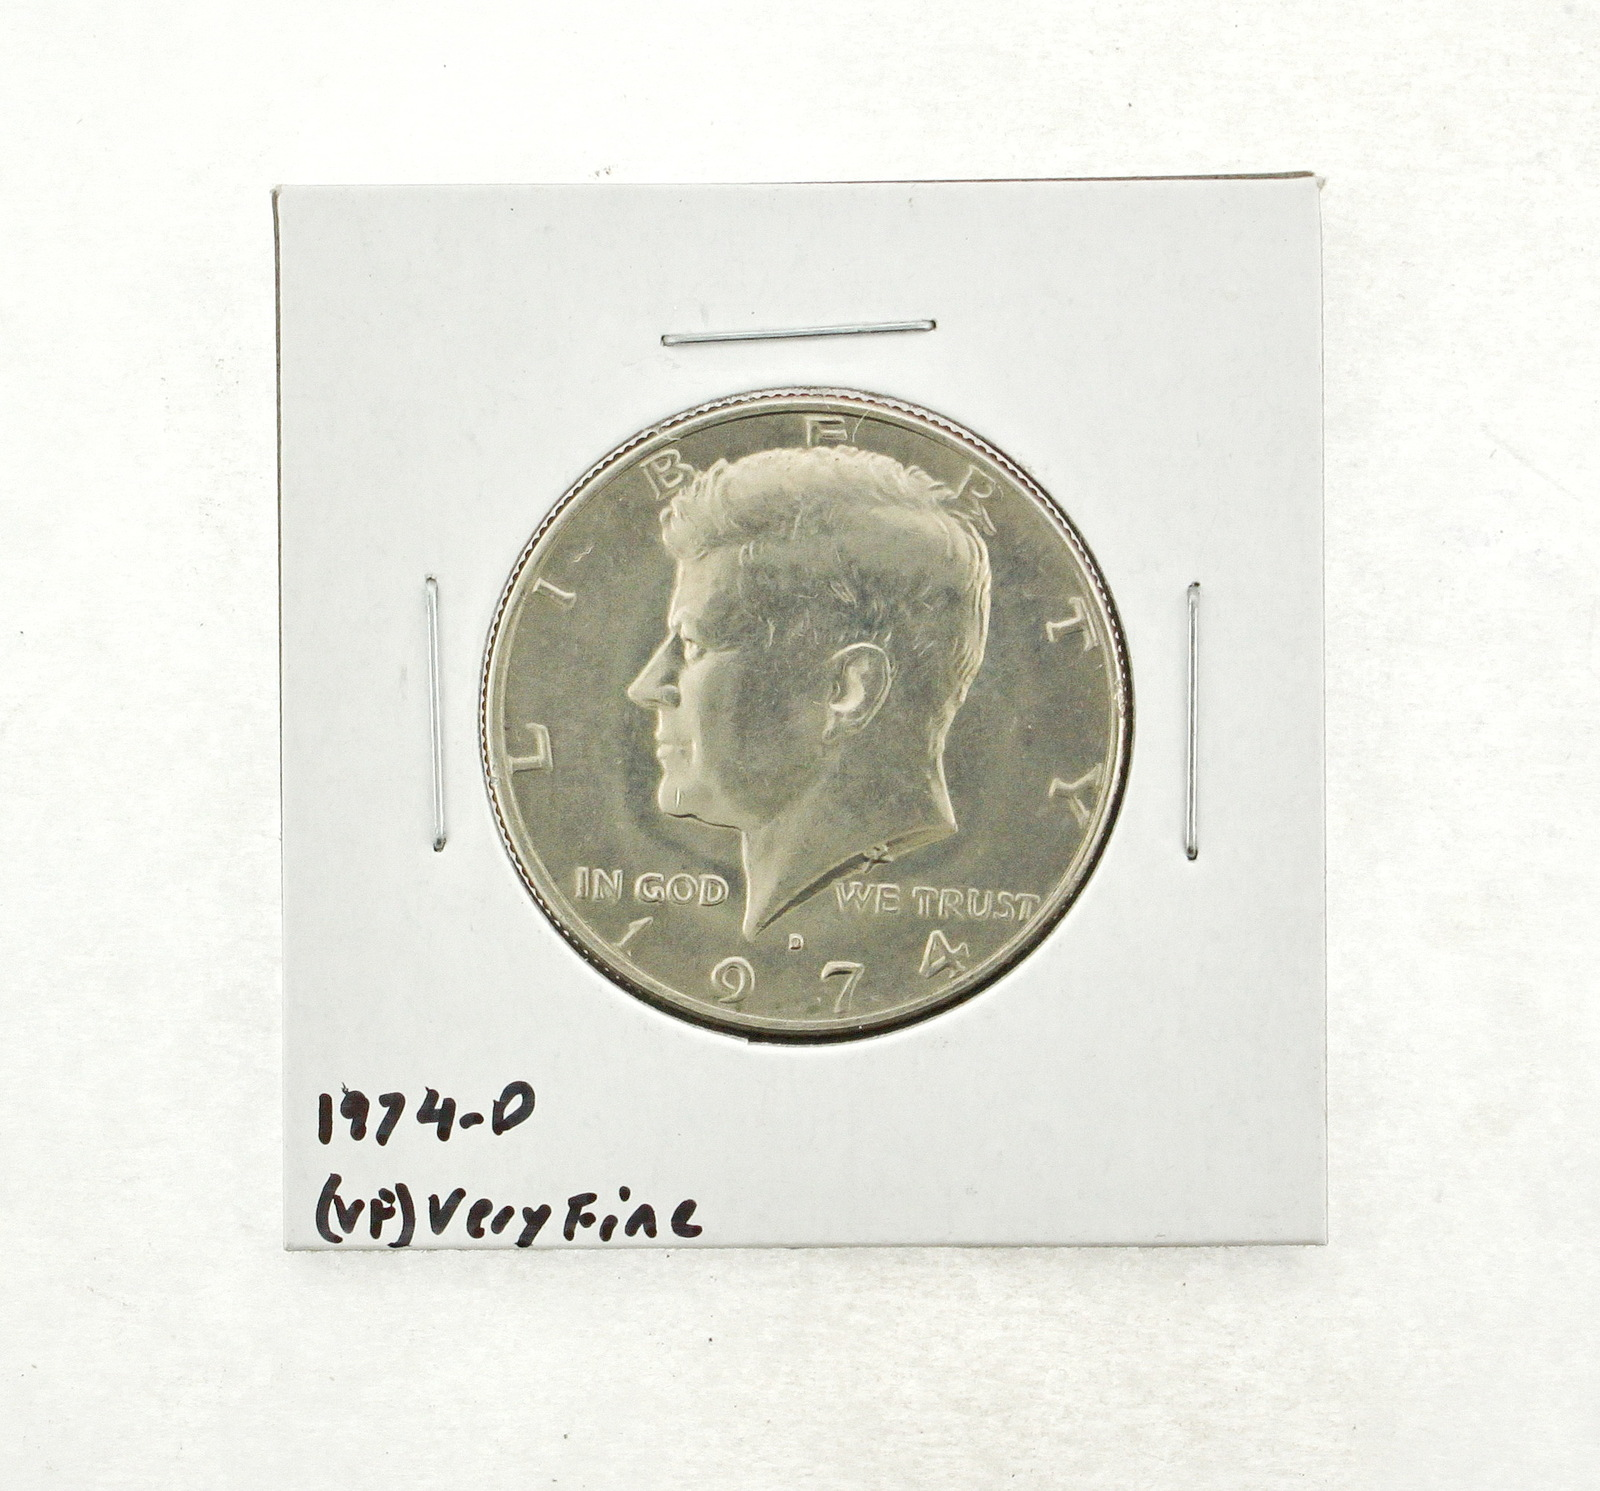 1974-D Kennedy Half Dollar (VF) Very Fine N2-3666-2